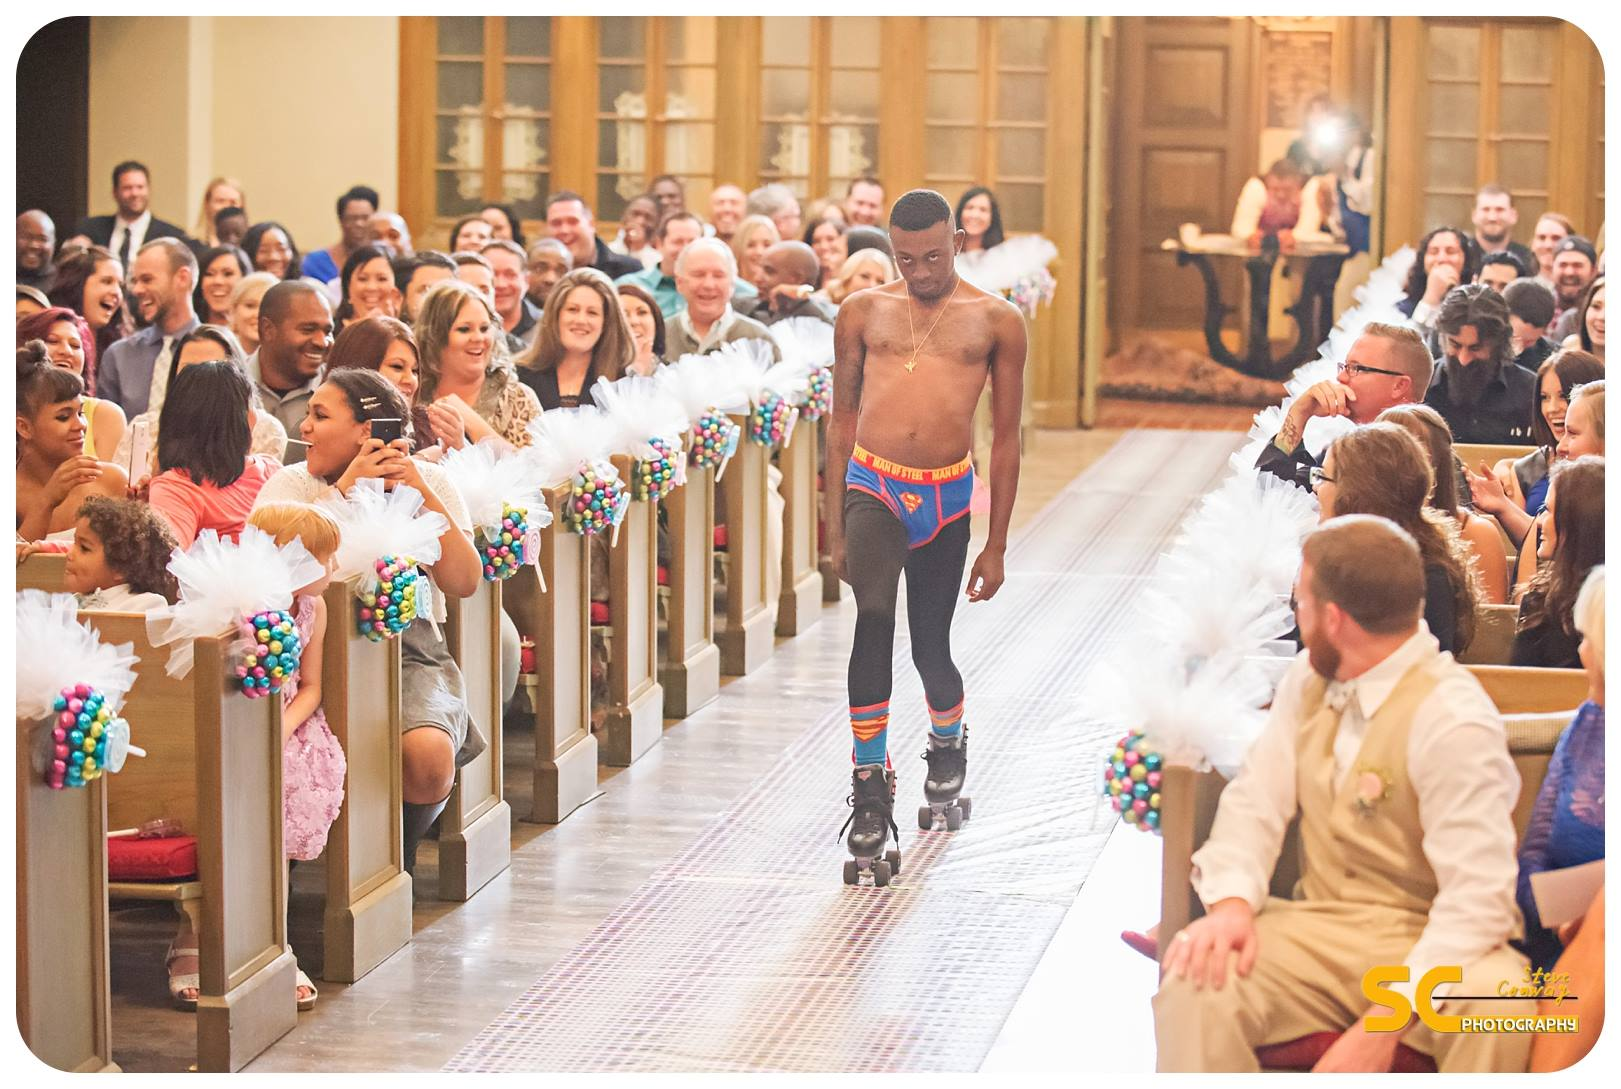 This Wedding Features the Best Ringbearer Ever http://t.co/tk3ixMapvB http://t.co/pLzFL4PCZF